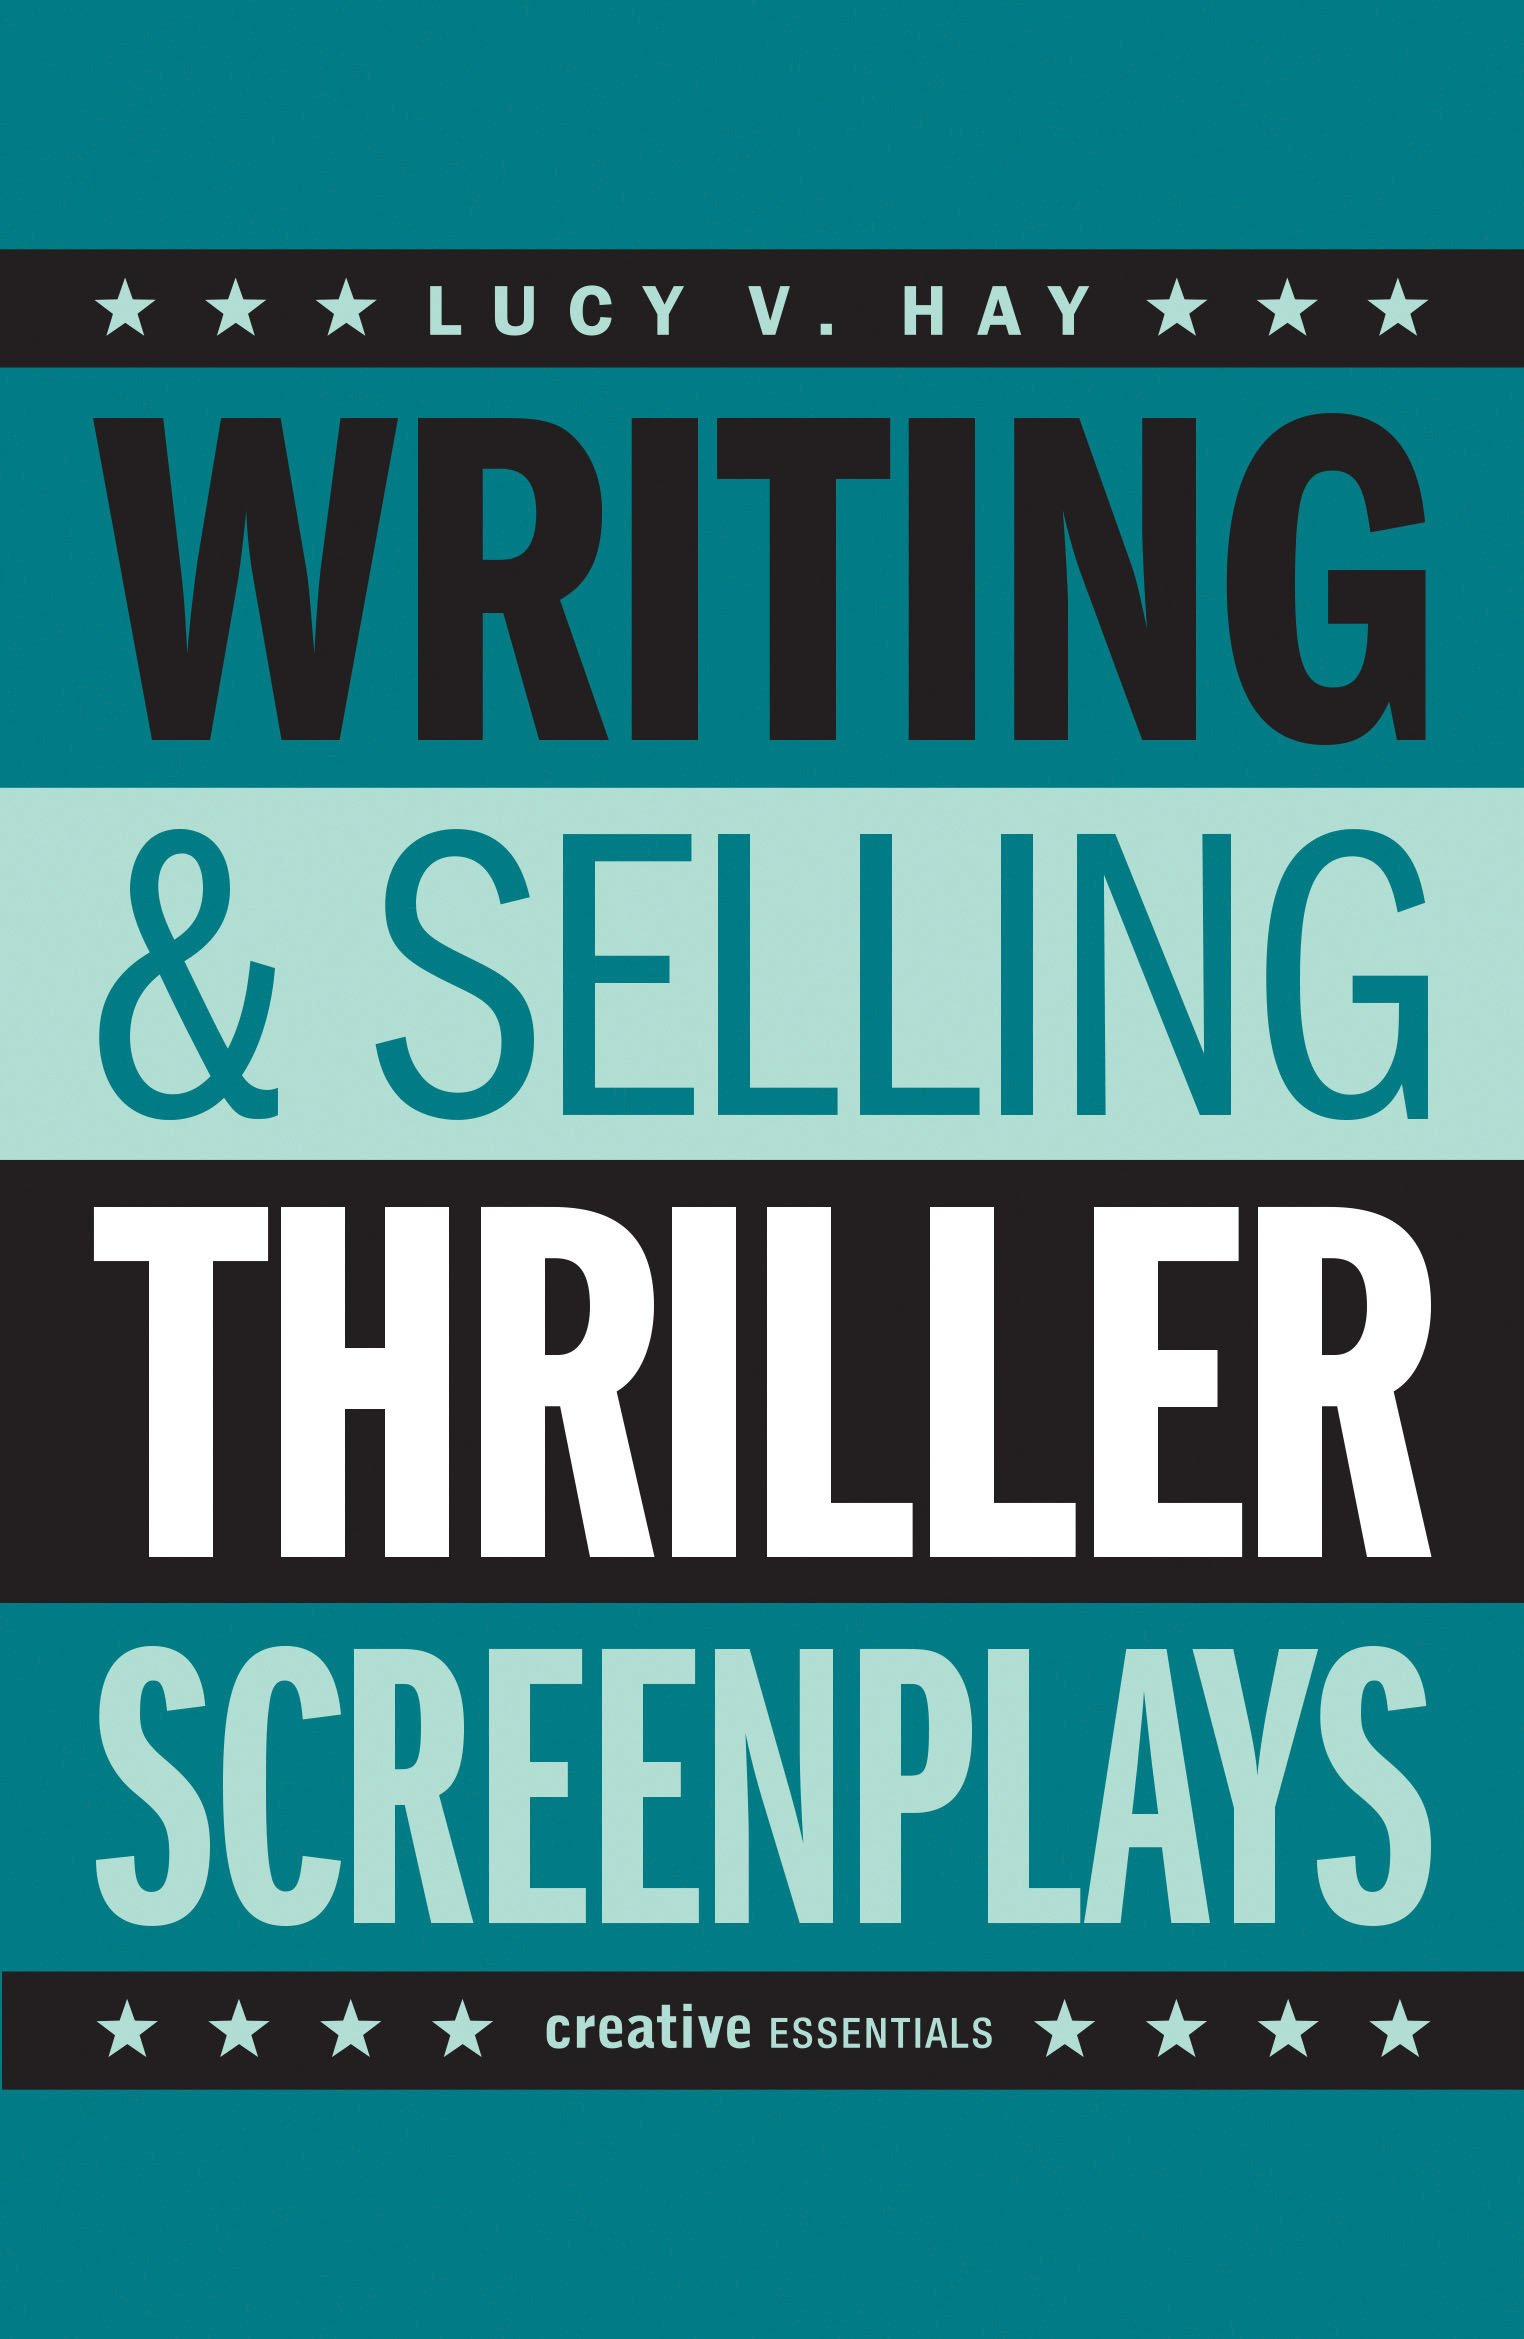 Writing & Selling Thriller Screenplays (Writing & Selling Screenplays):  Lucy V. Hay: 9781842439715: Amazon.com: Books